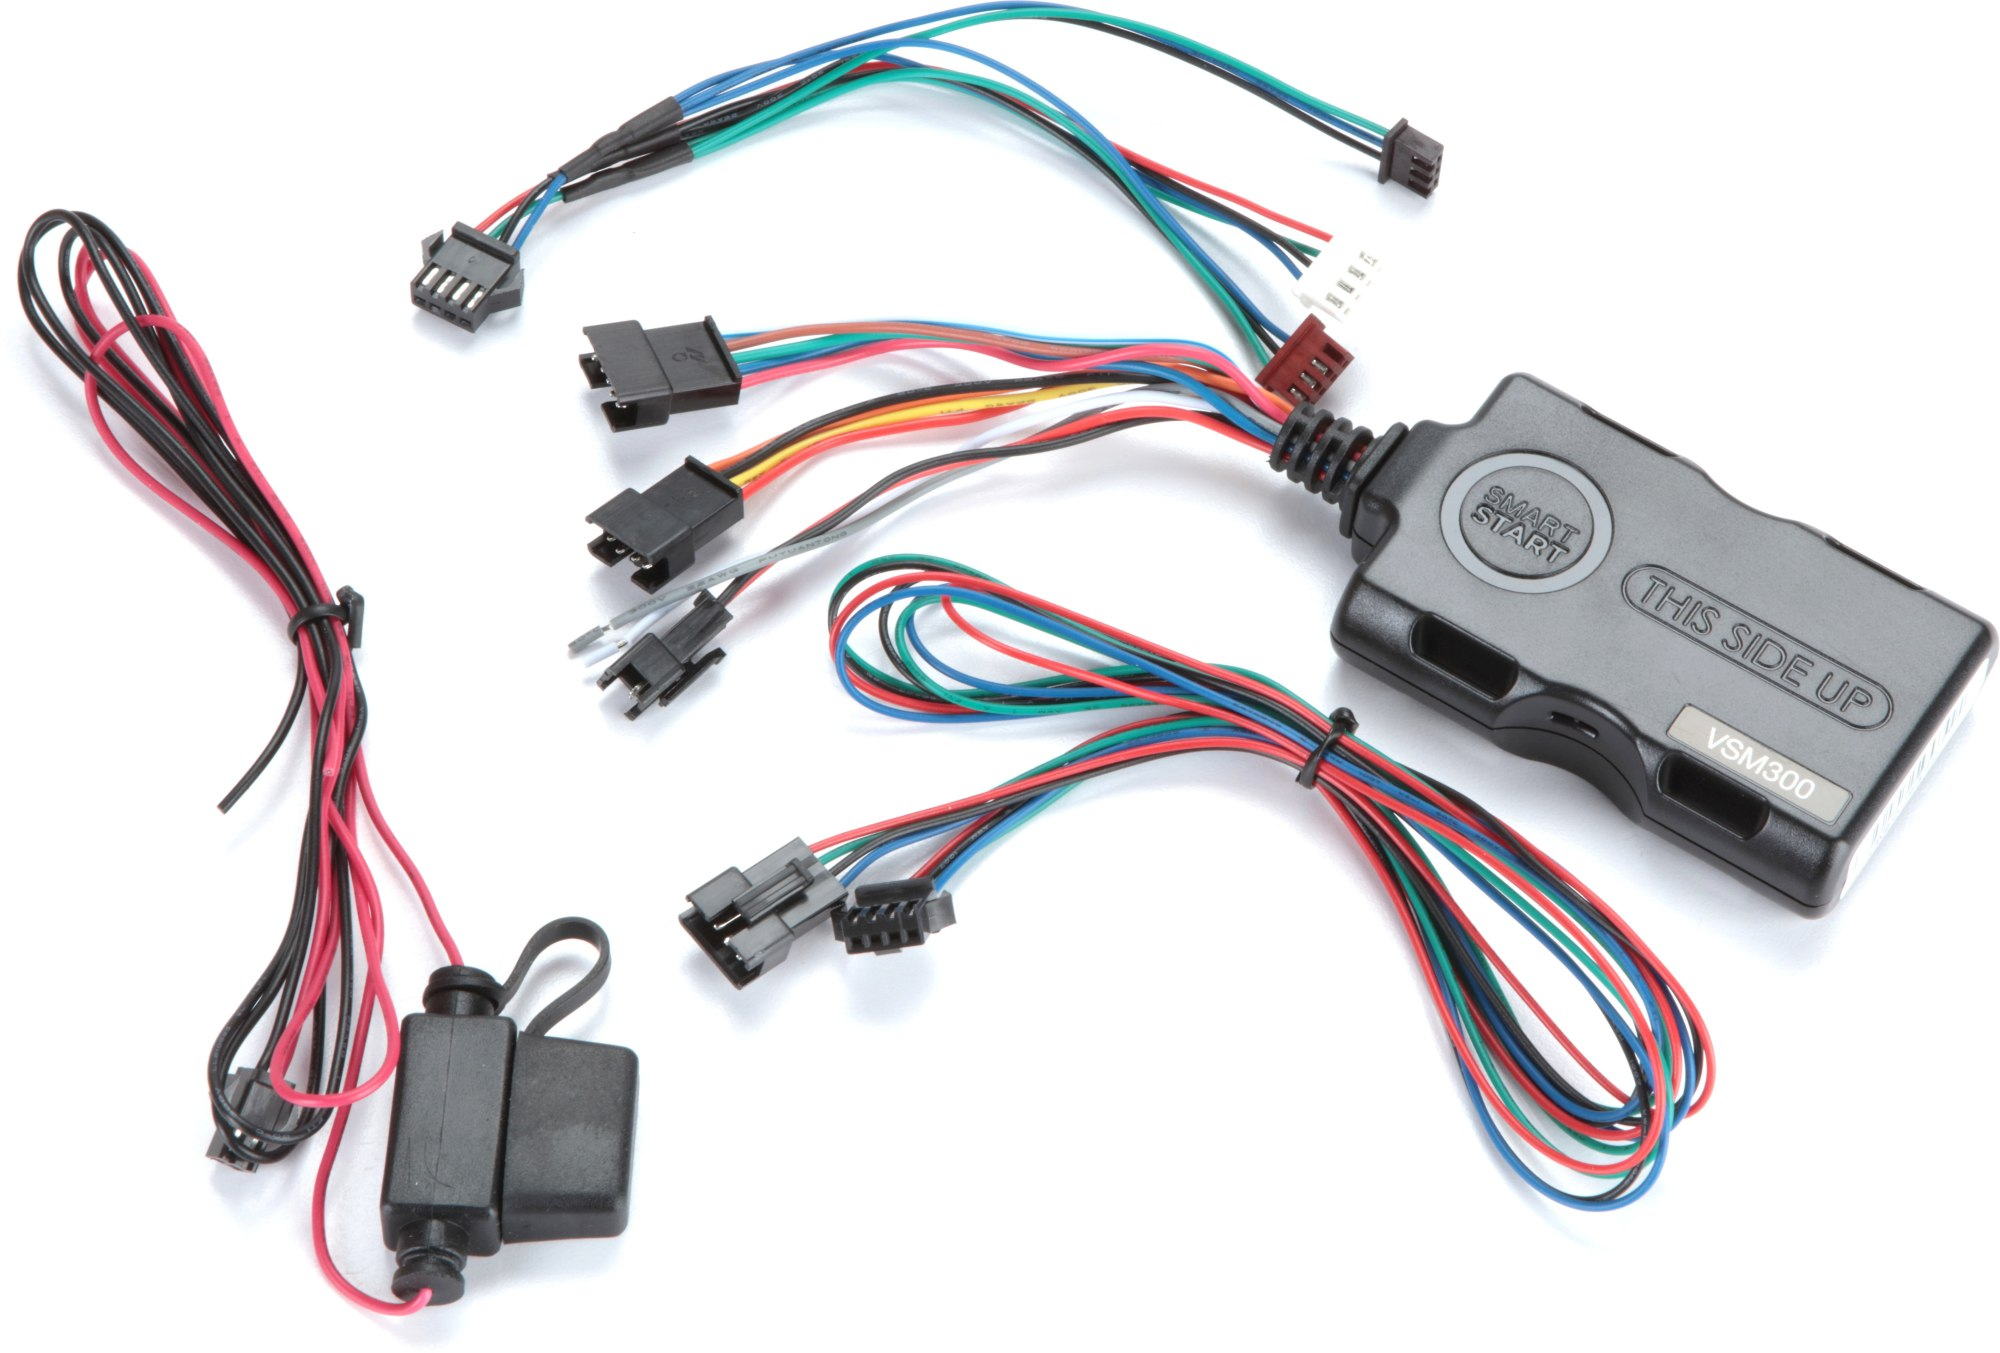 hight resolution of viper vsm300 smartstart module connects your smartphone or smartwatch to your remote start system at crutchfield com